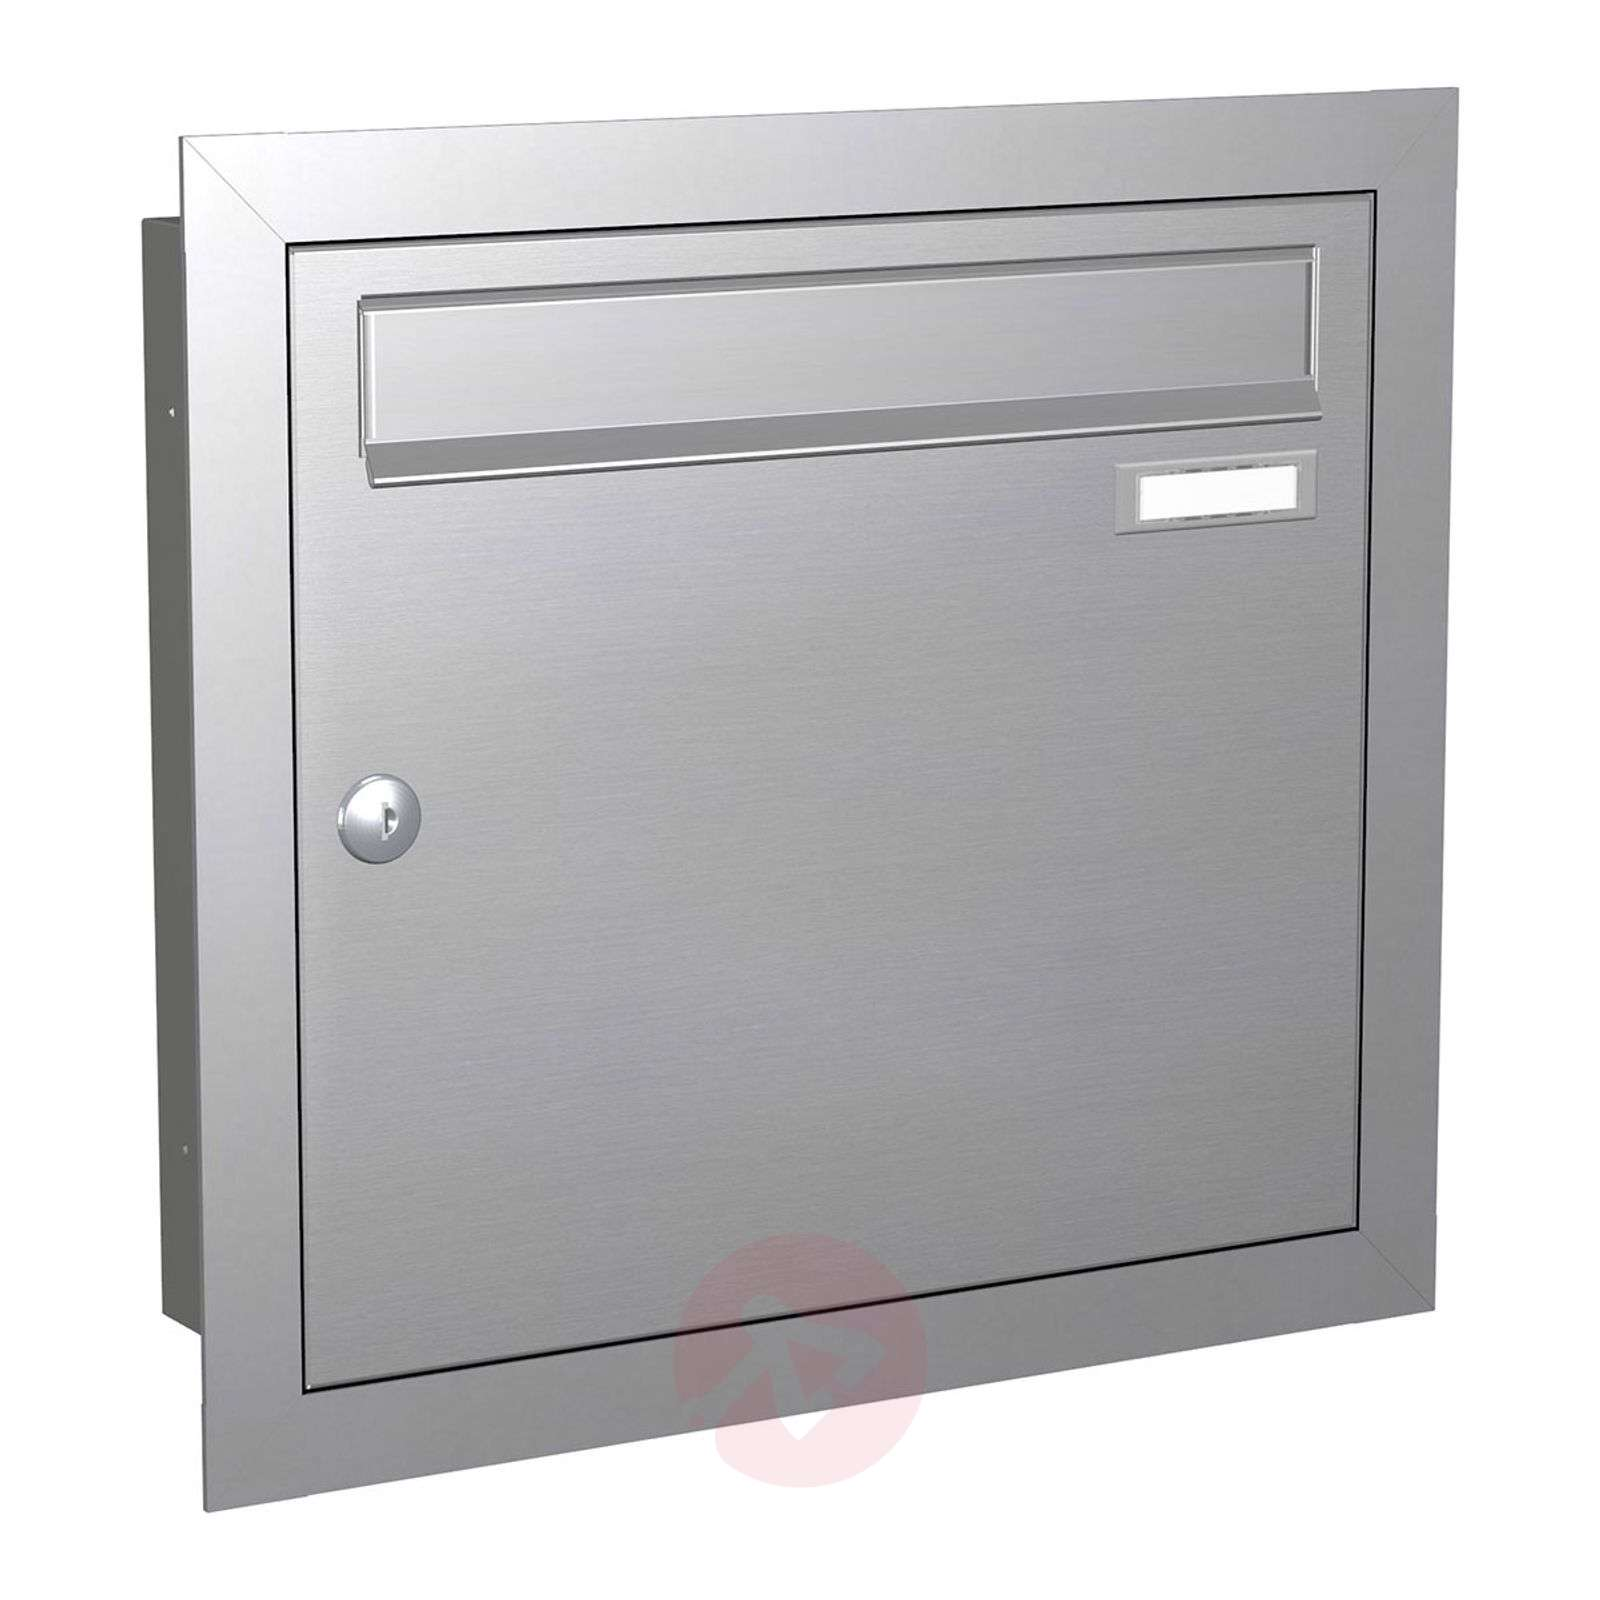 Letterbox Express Box Up 110 stainless steel-5540030-01